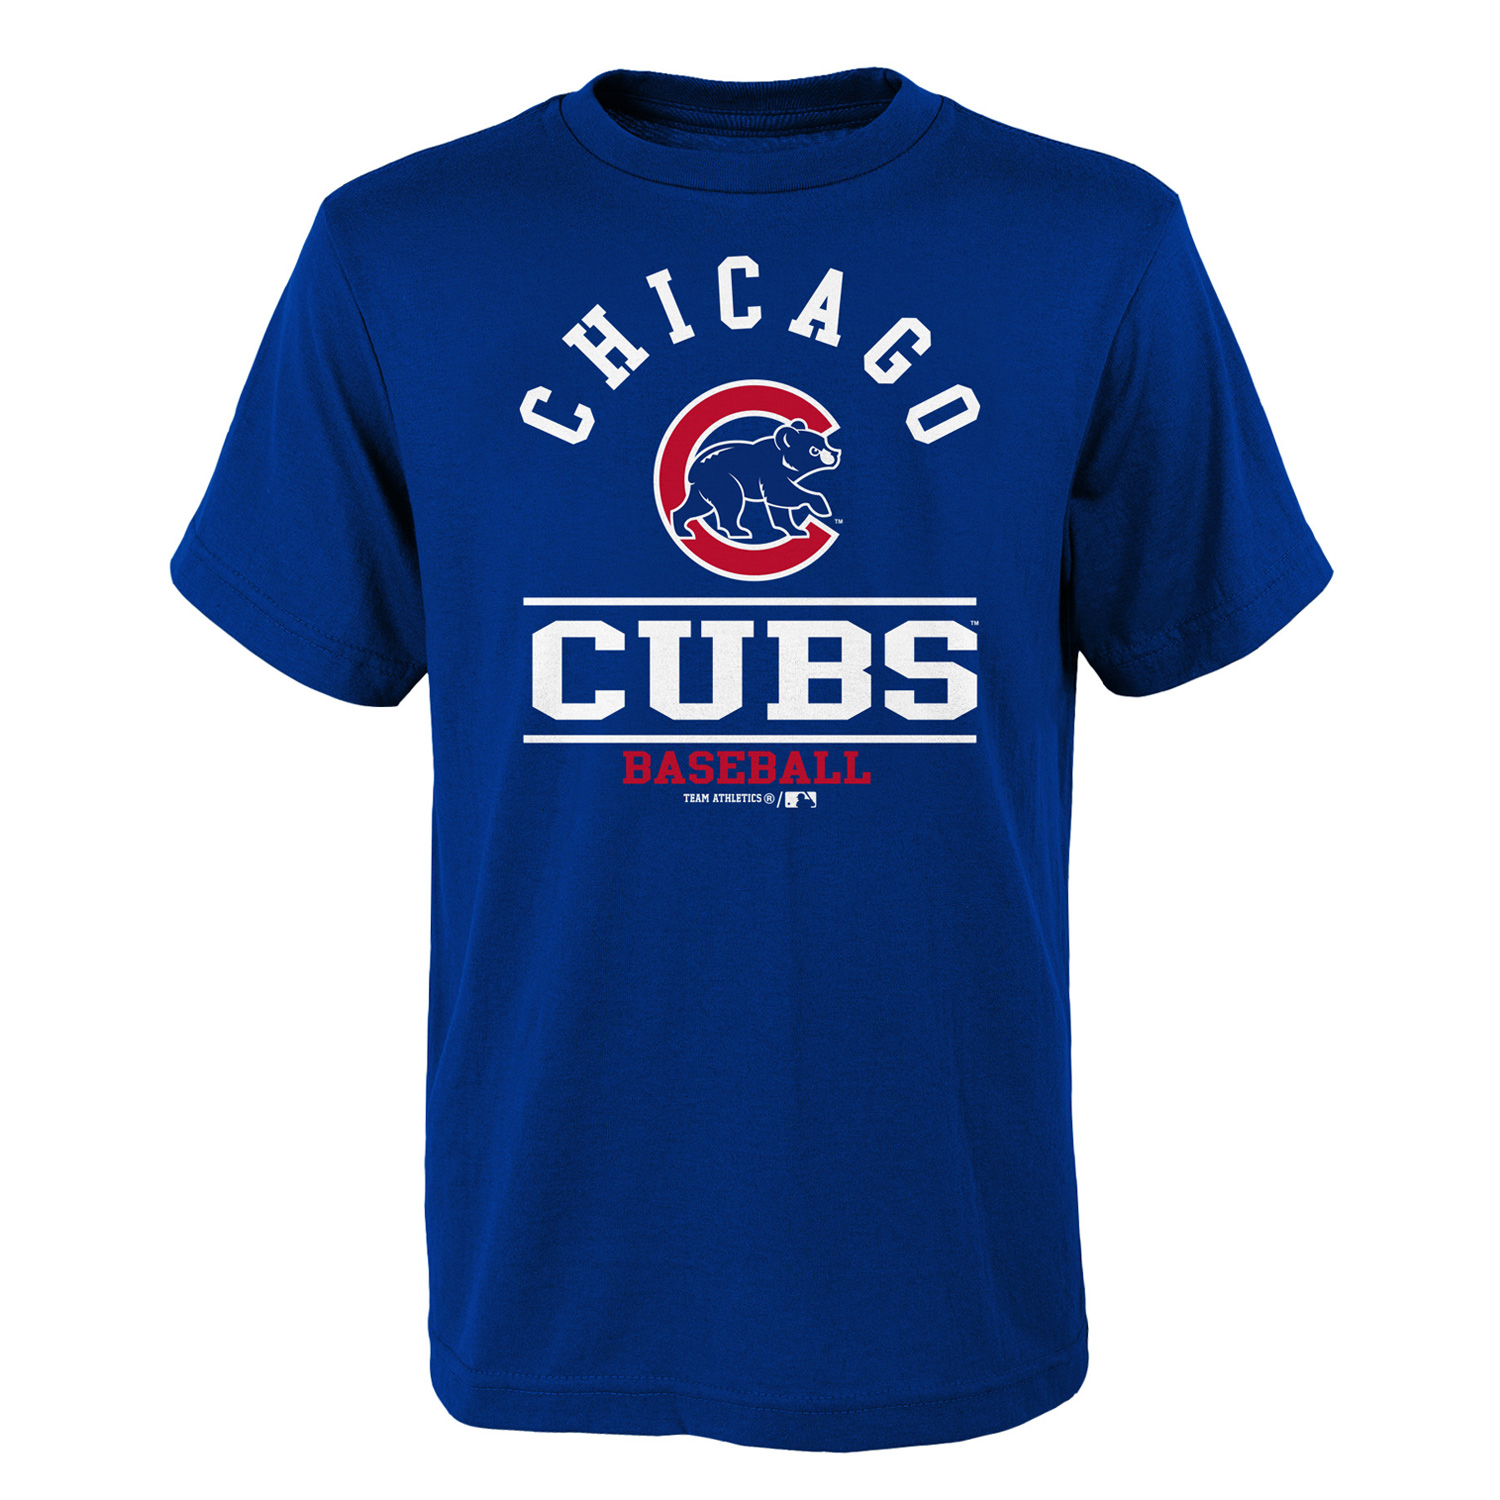 Youth Royal Chicago Cubs Arch T-Shirt